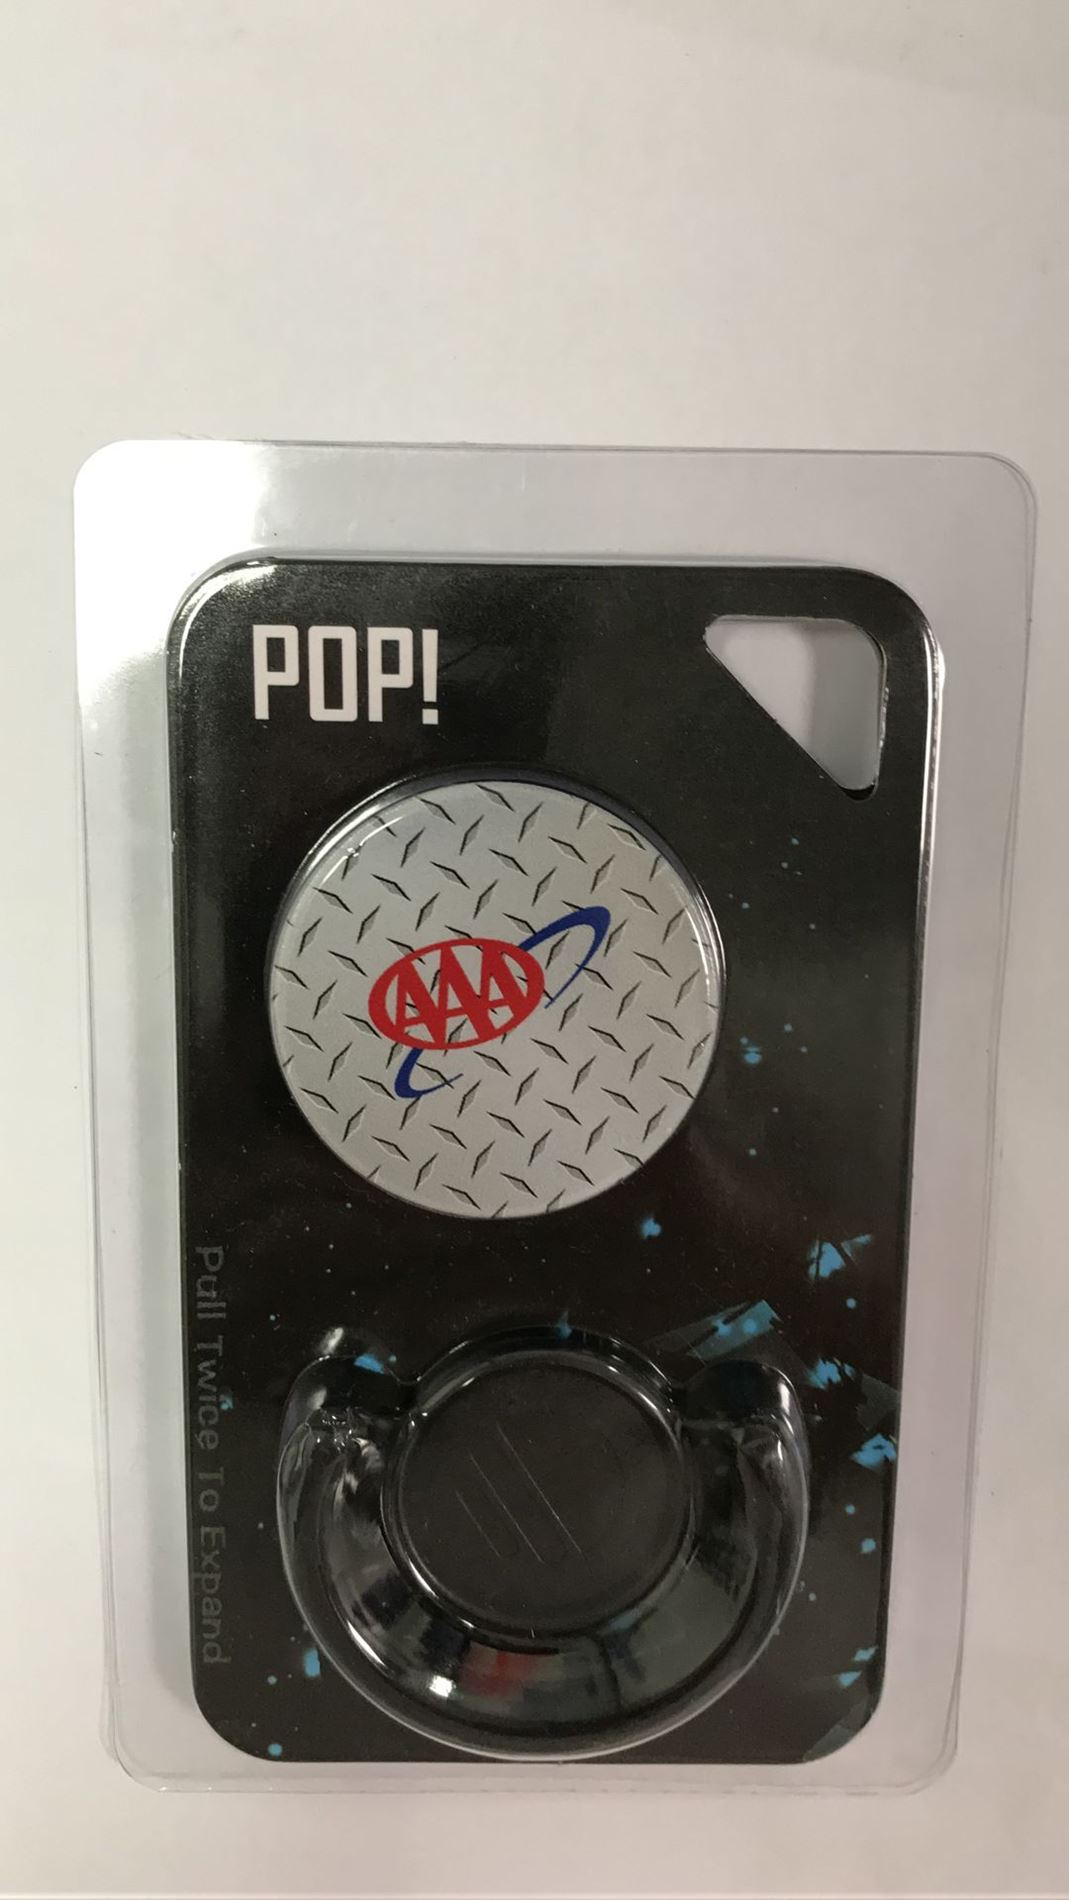 Picture of POP MOBILE PHONE HOLDER & CLIP